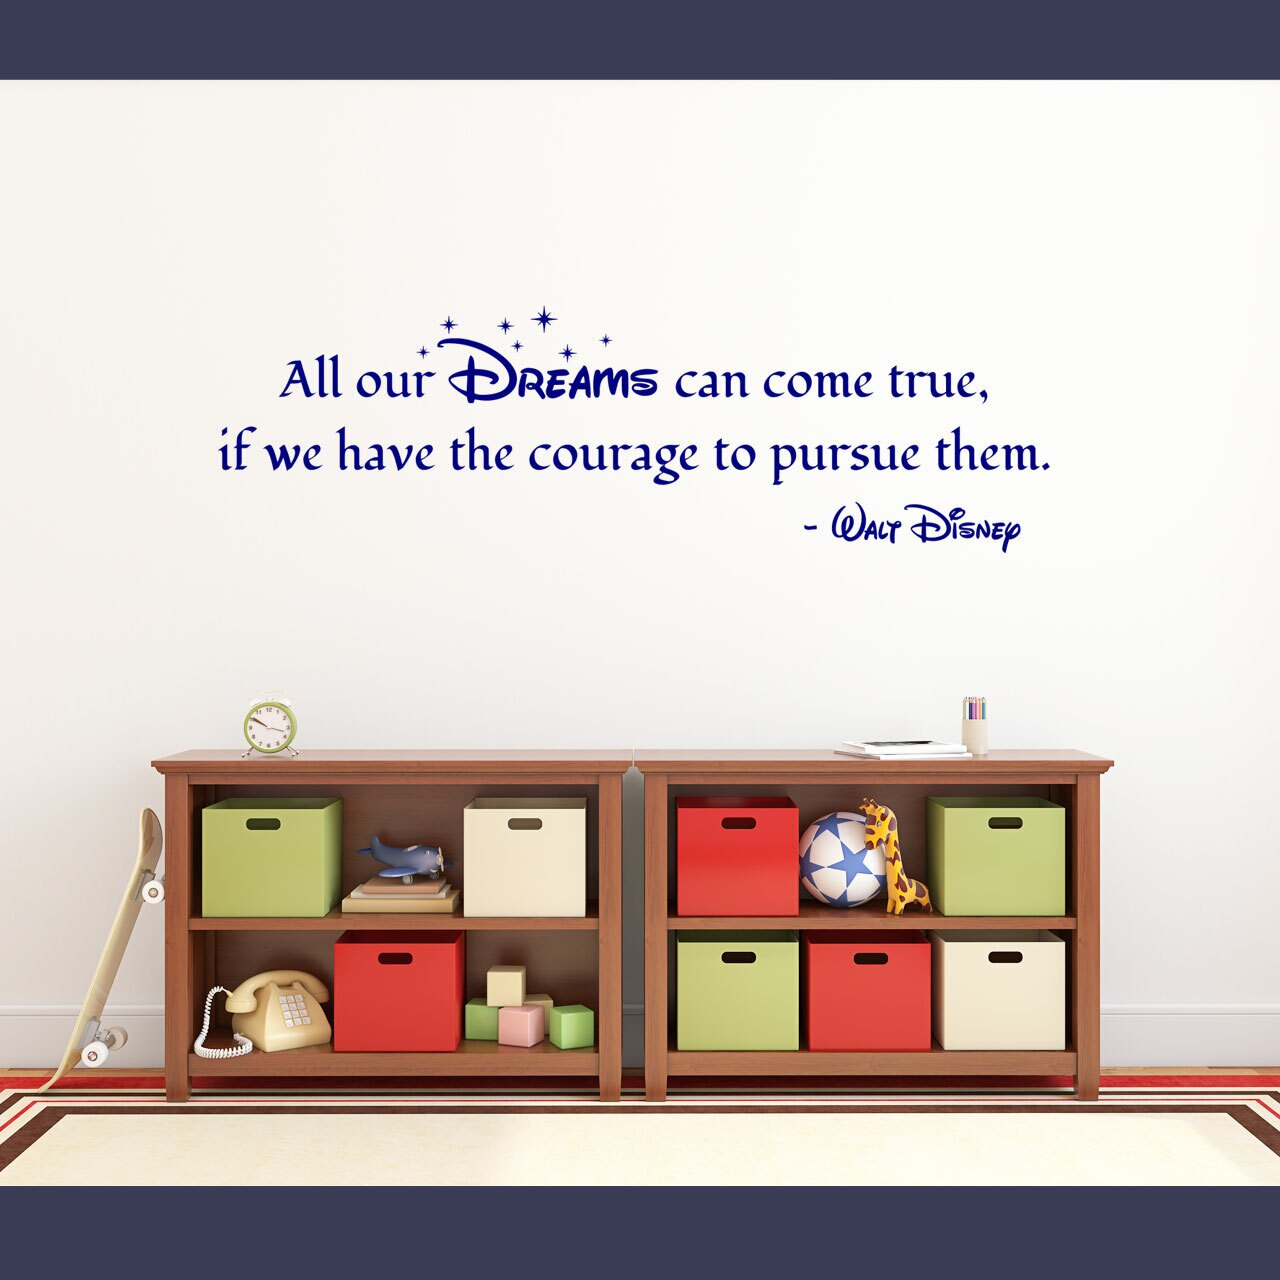 """""""All our Dreams can come true if we have the courage to pursue them."""" -Walt Disney written in blue vinyl lettering on a white wall over some bookcases."""